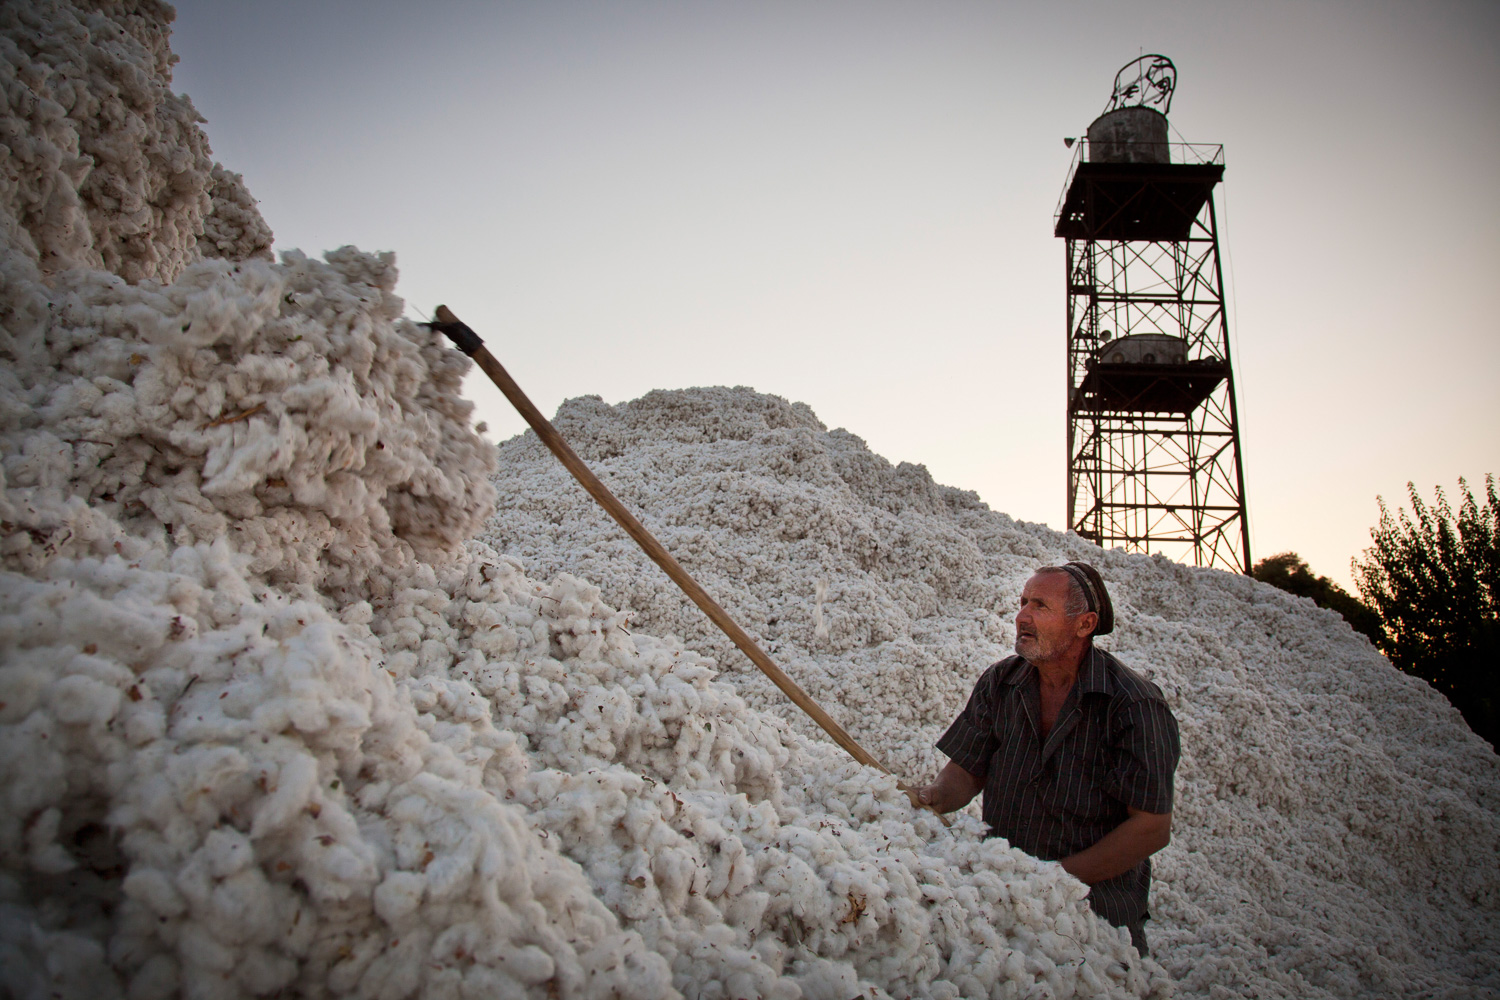 Cotton harvest near Tursunzoda, Tajikistan